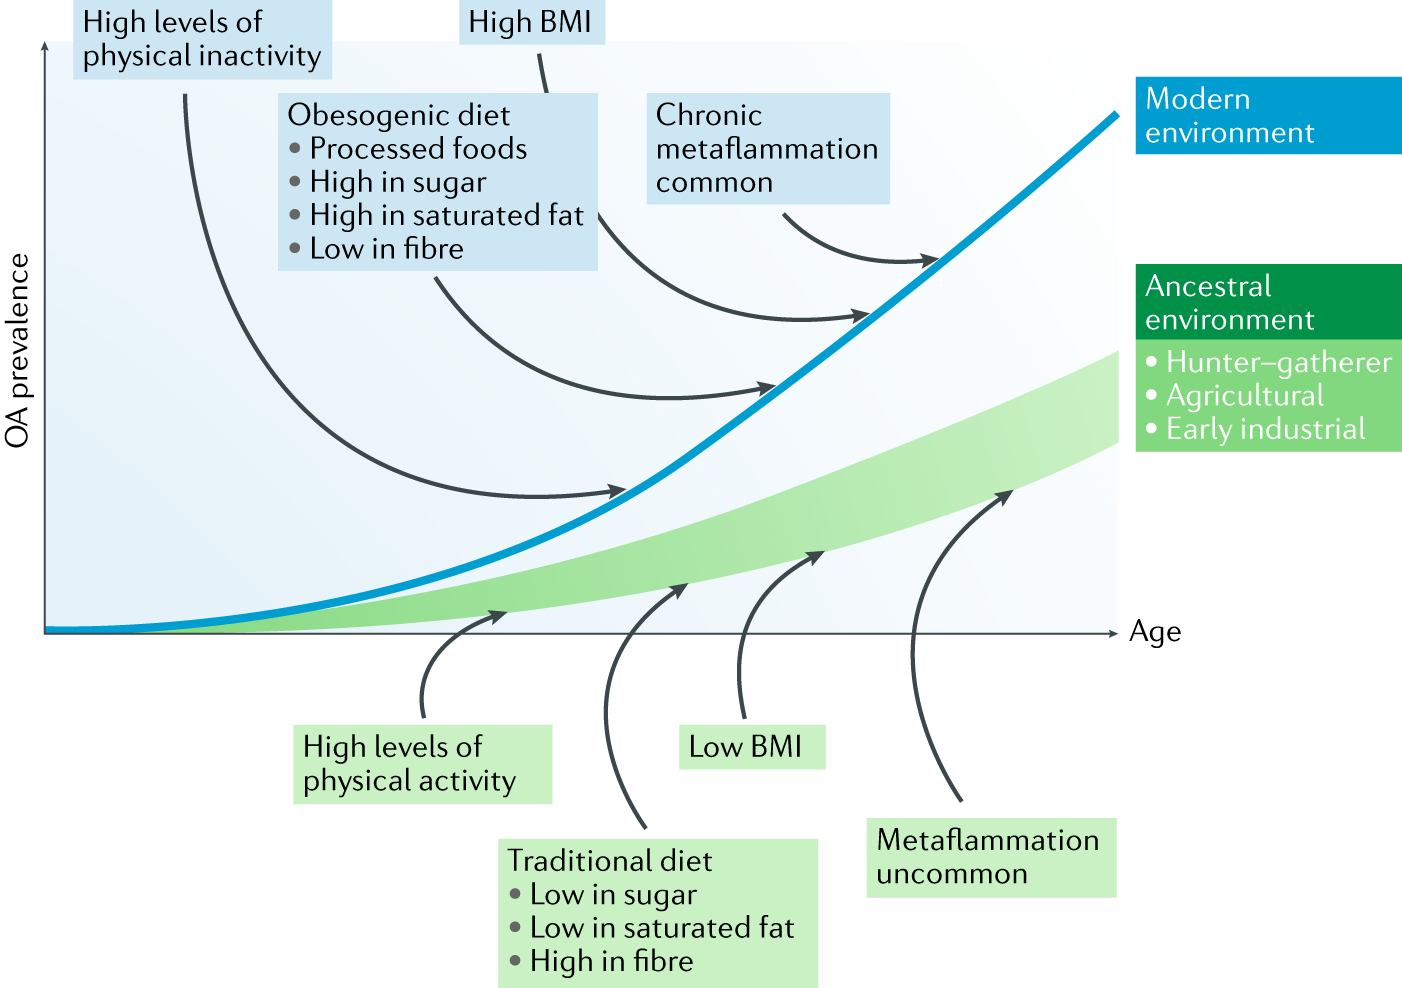 Modern-day environmental factors in the pathogenesis of